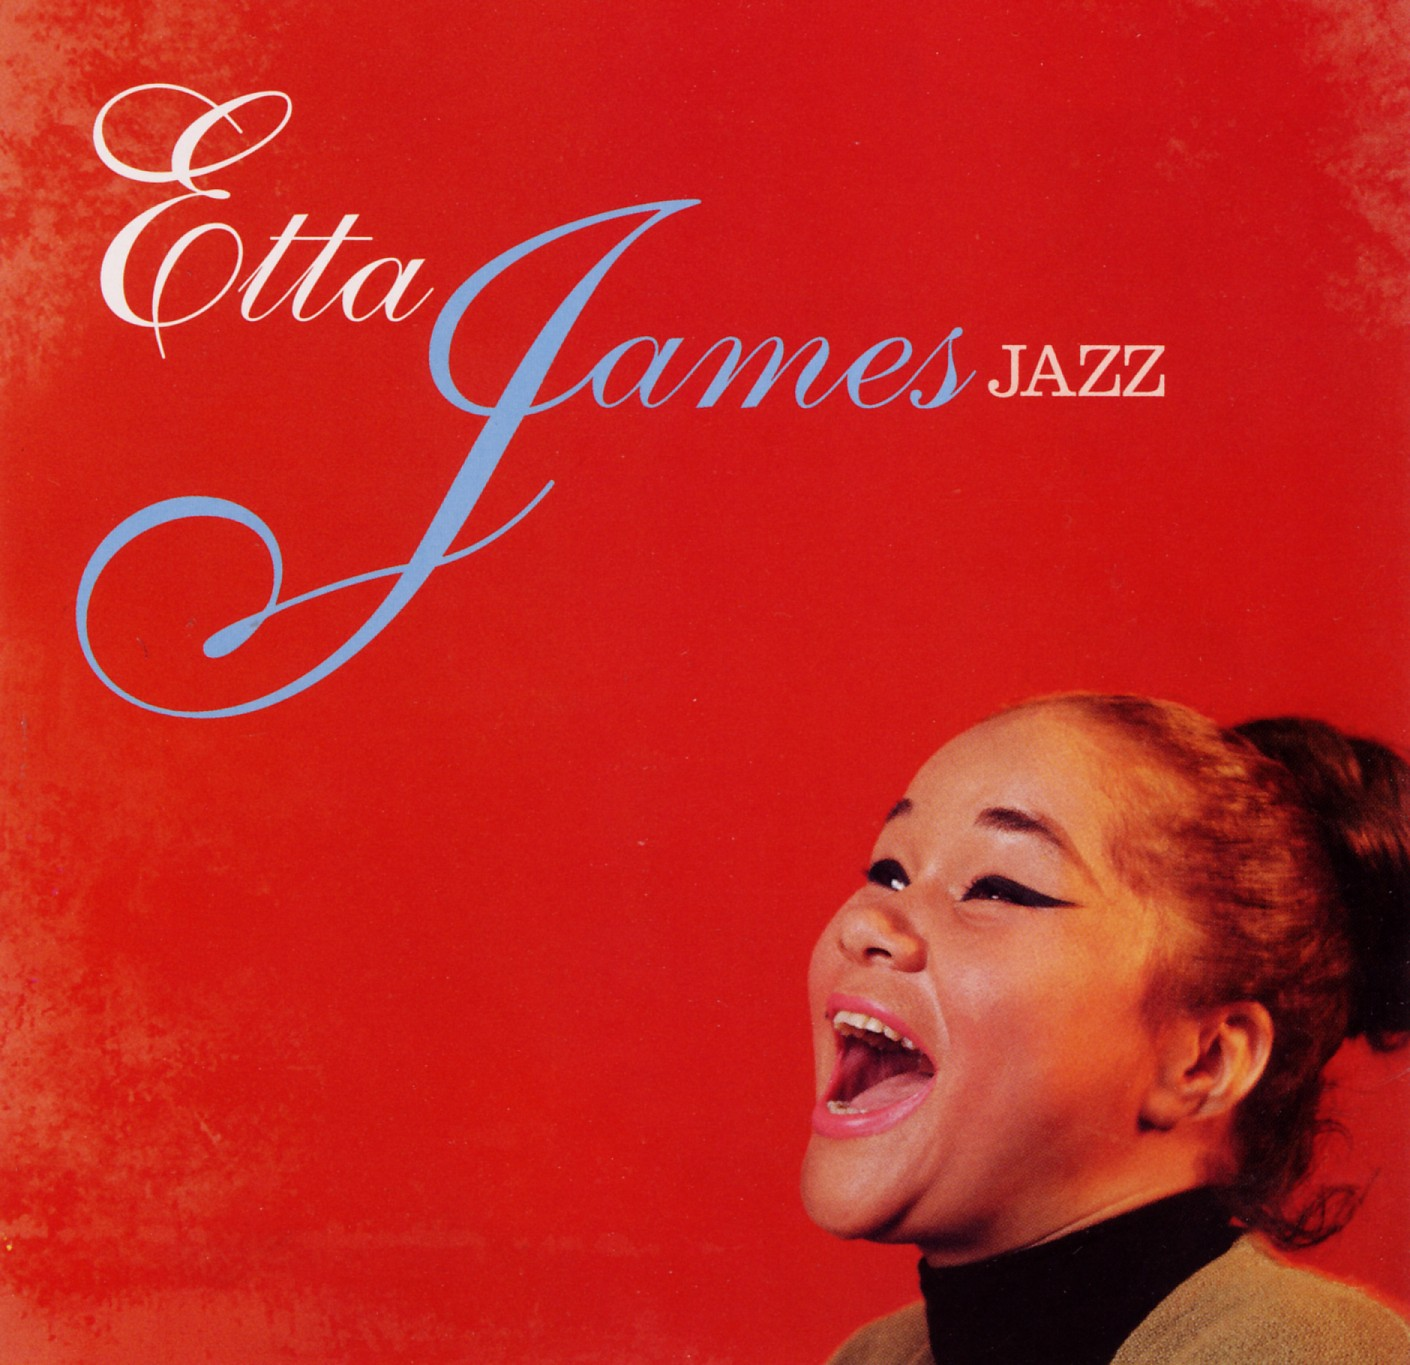 Etta James images forever etta HD wallpaper and background photos 1410x1365